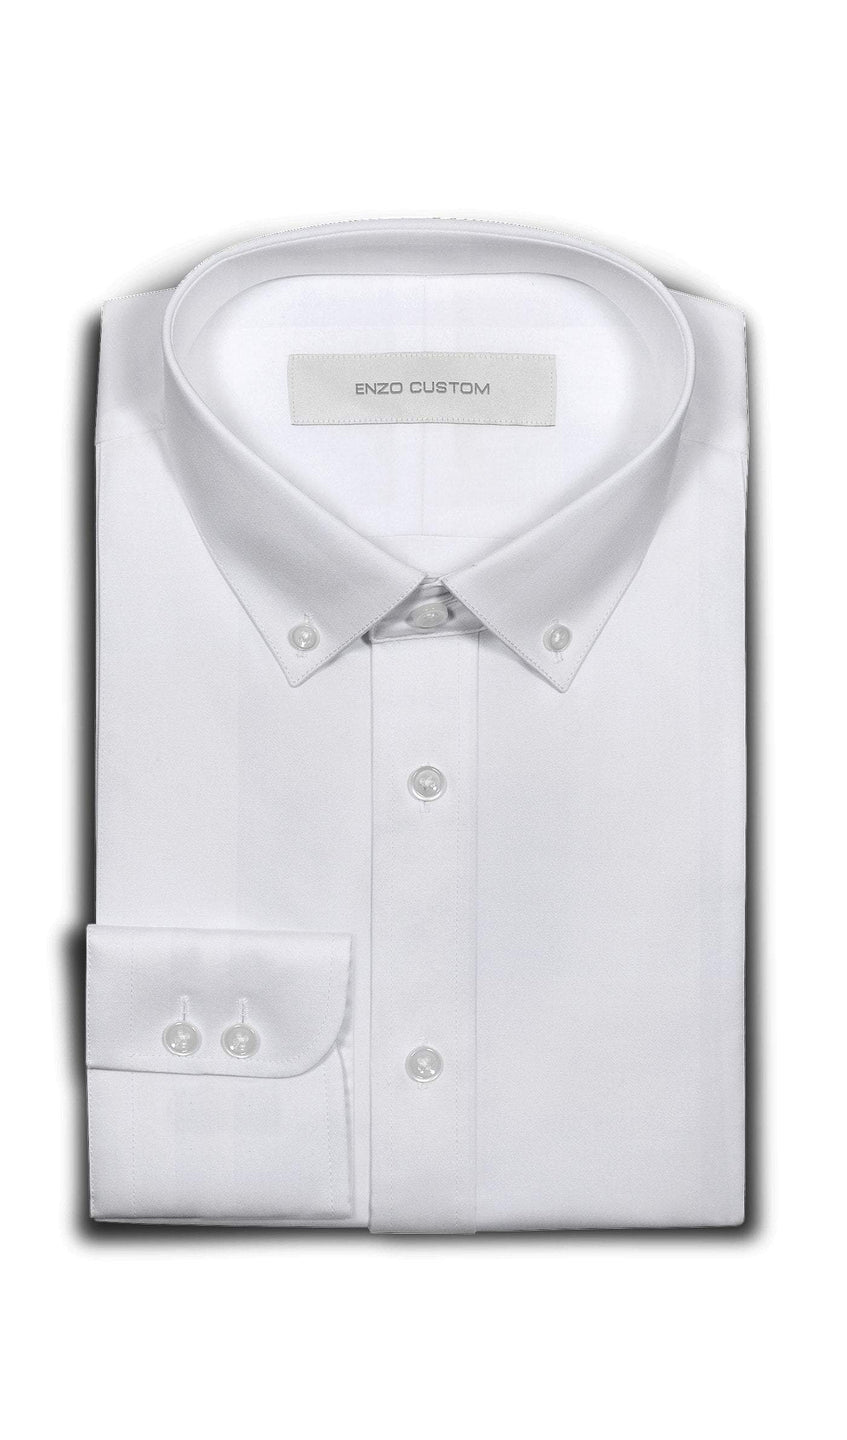 Non-Iron Cotton White Solid Casual Shirt - Enzo Custom